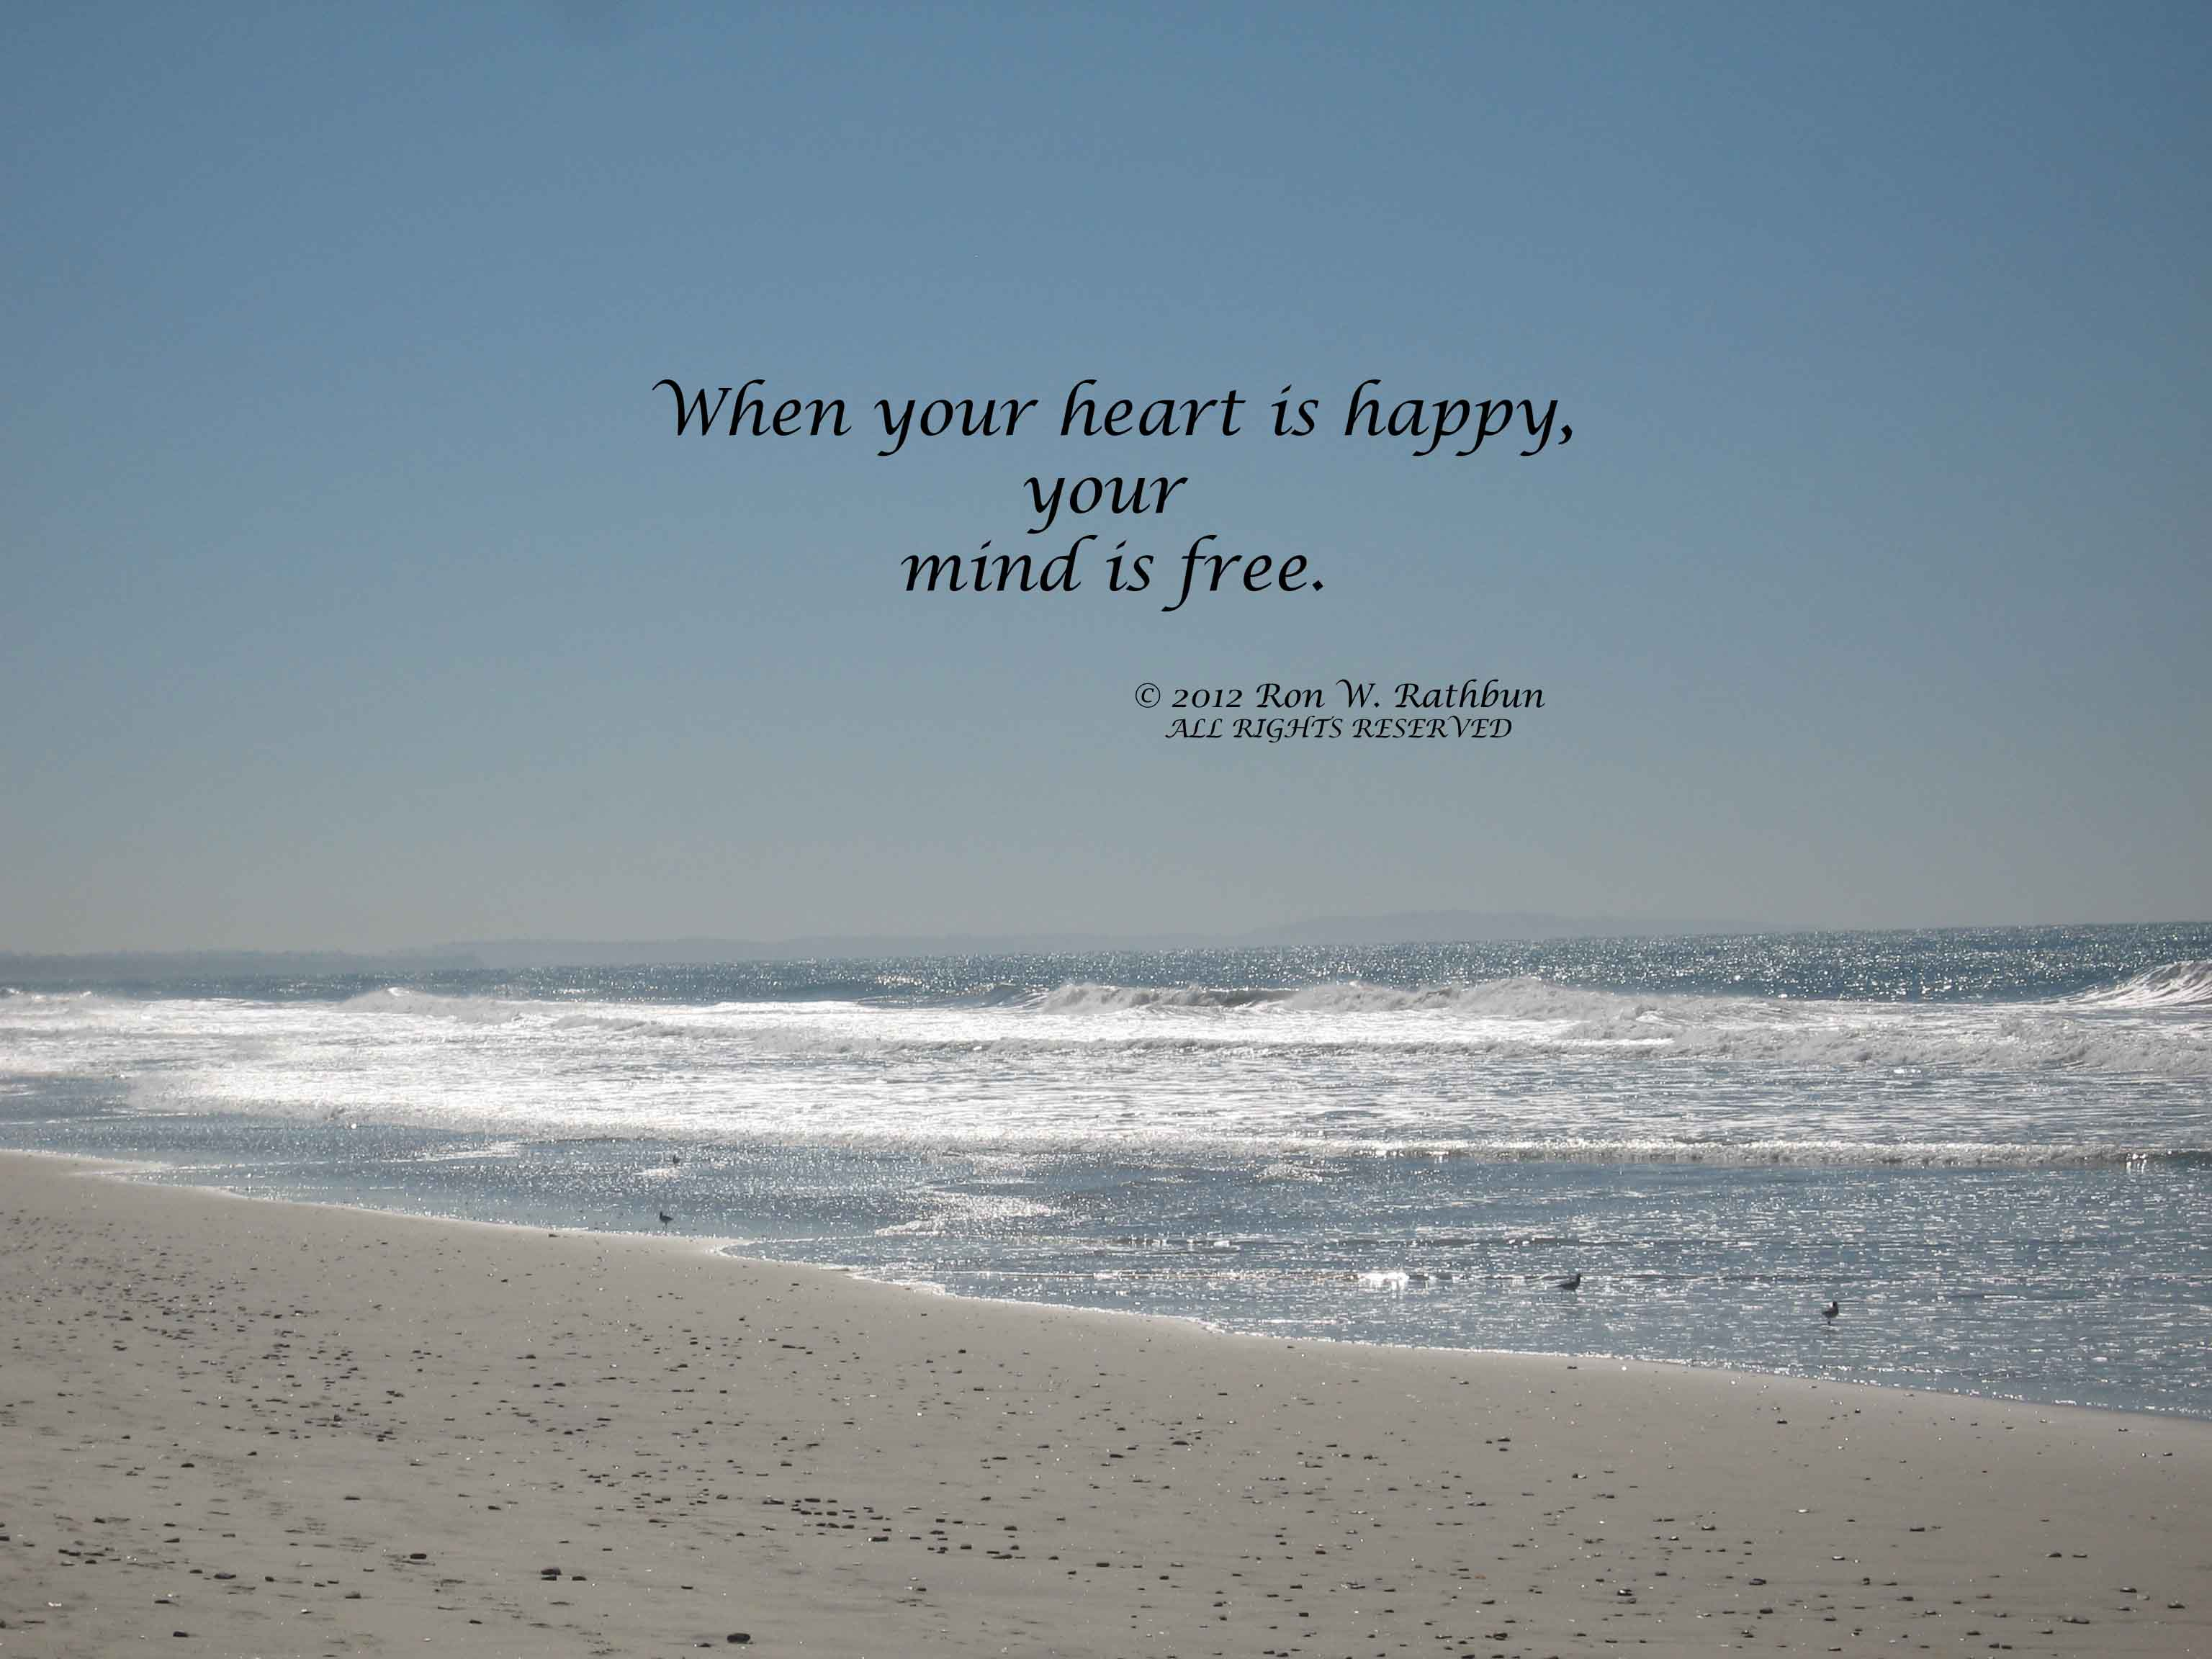 Free Your Mind Quotes 64 Best Peace Of Mind Quotes And Sayings